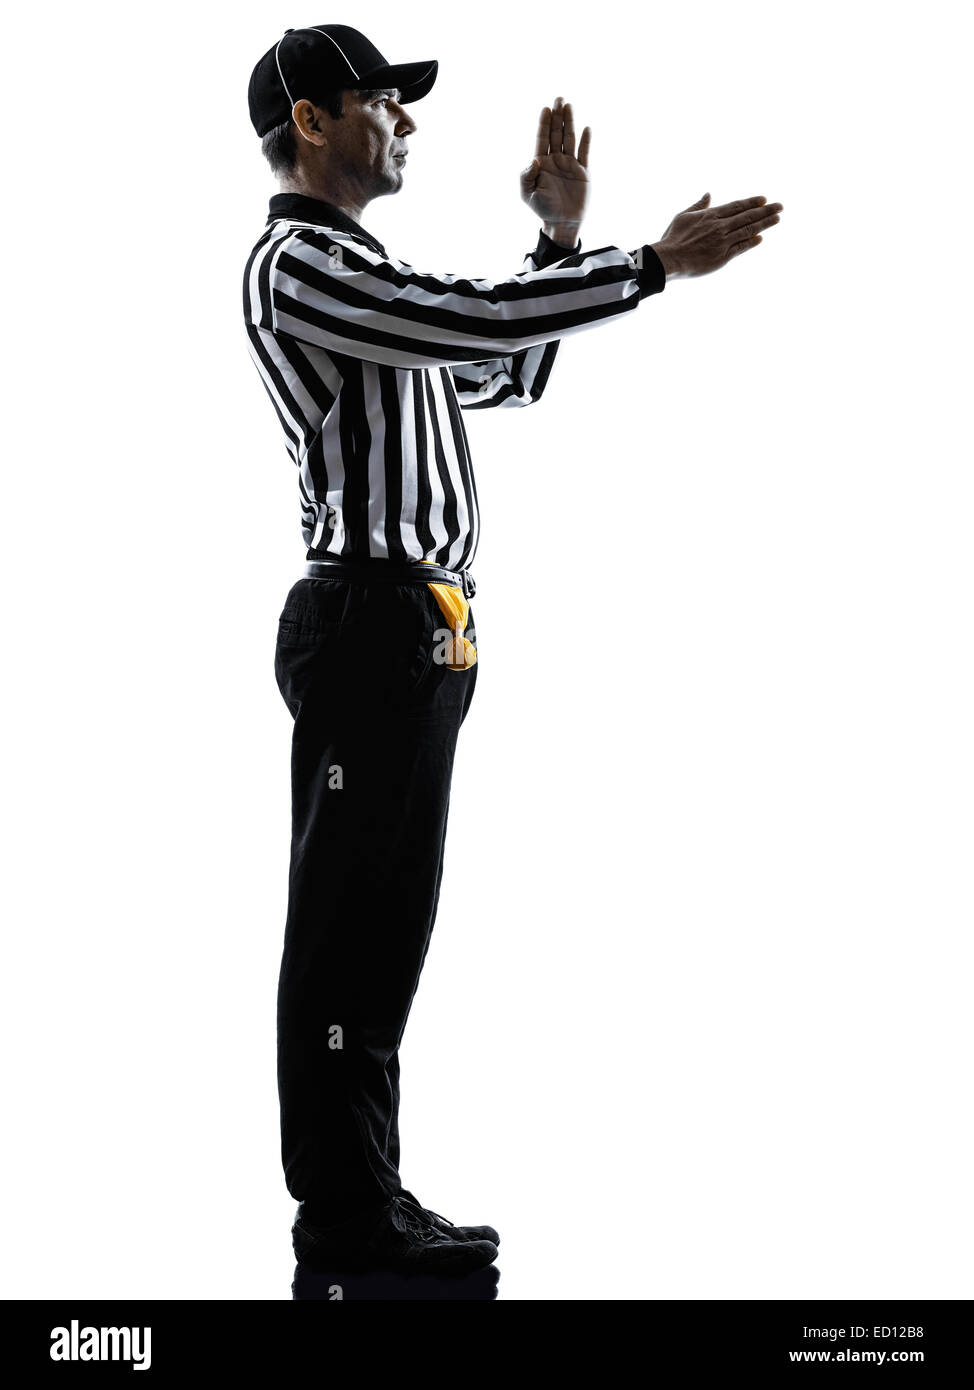 american football referee gestures in silhouette on white background - Stock Image